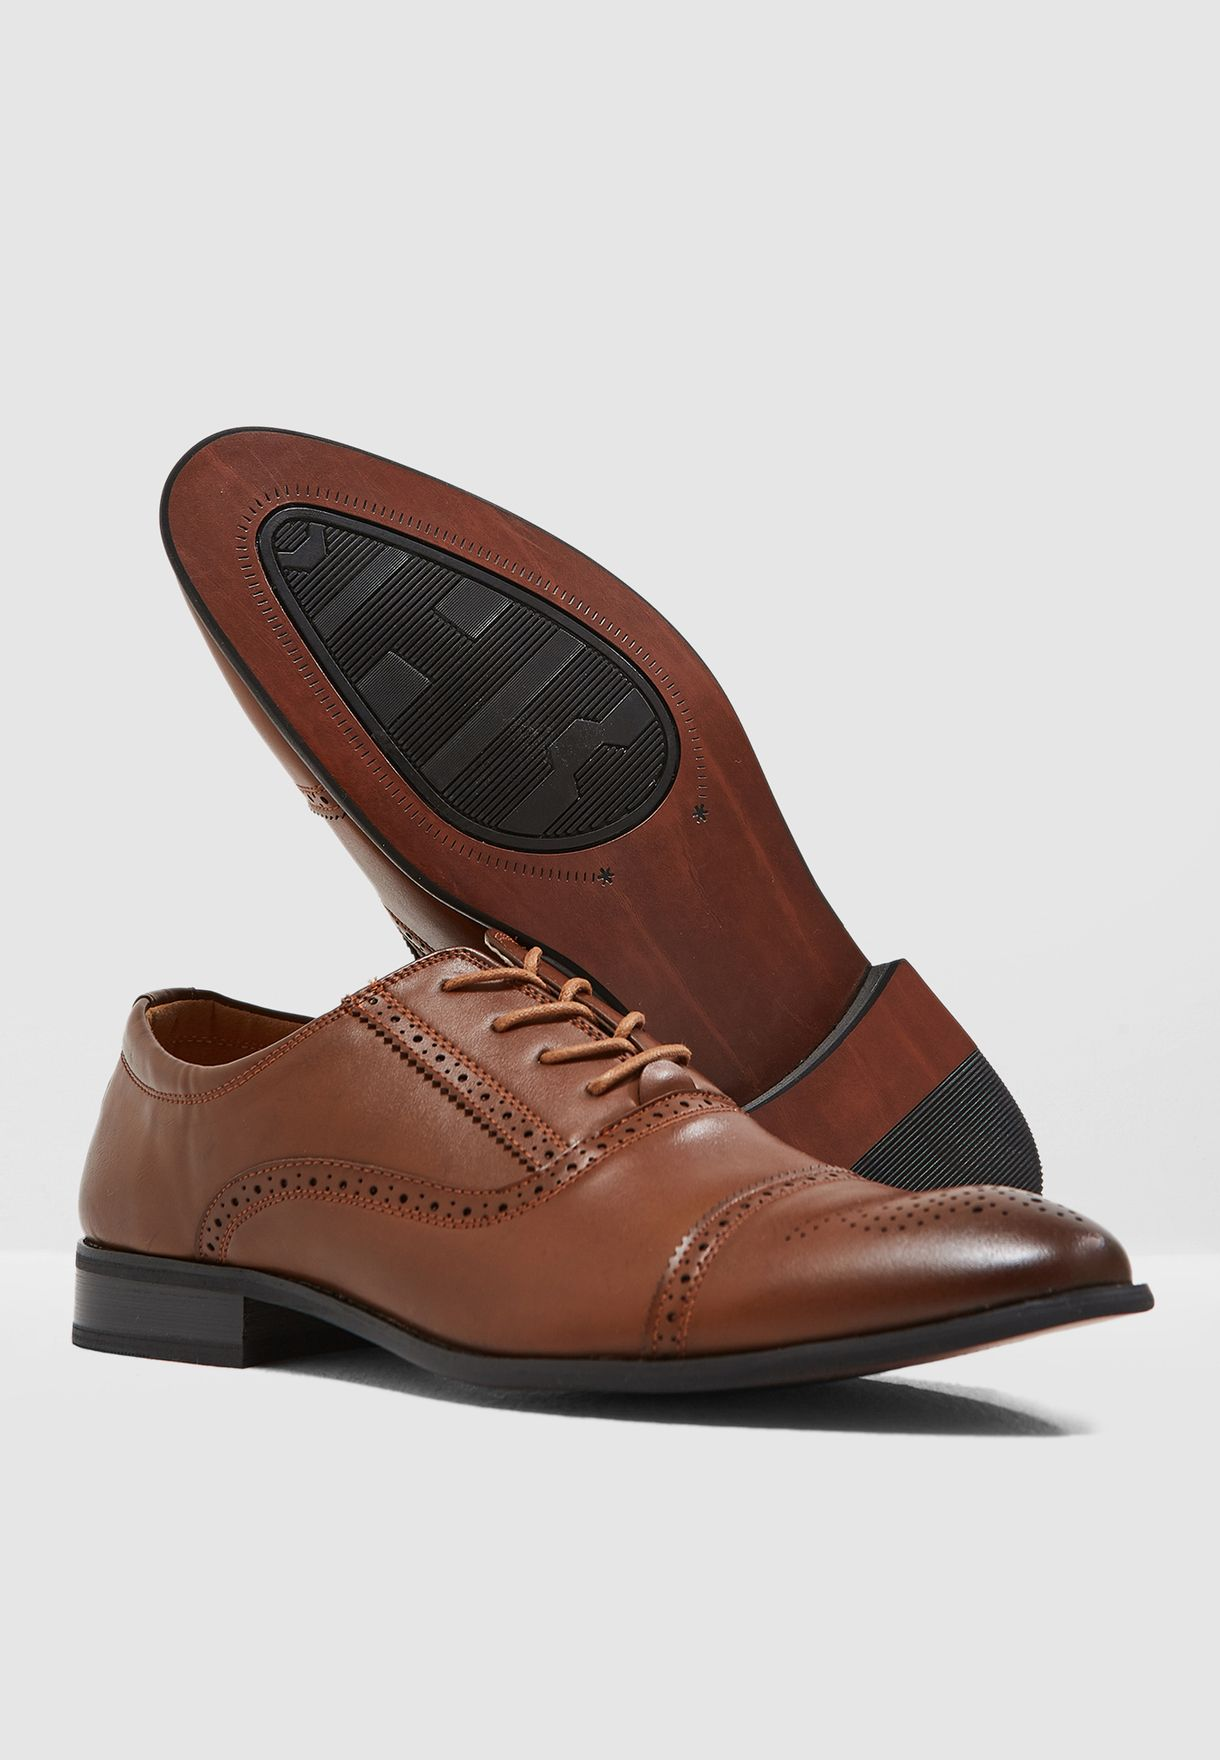 Classic Brogue Oxford Lace Ups